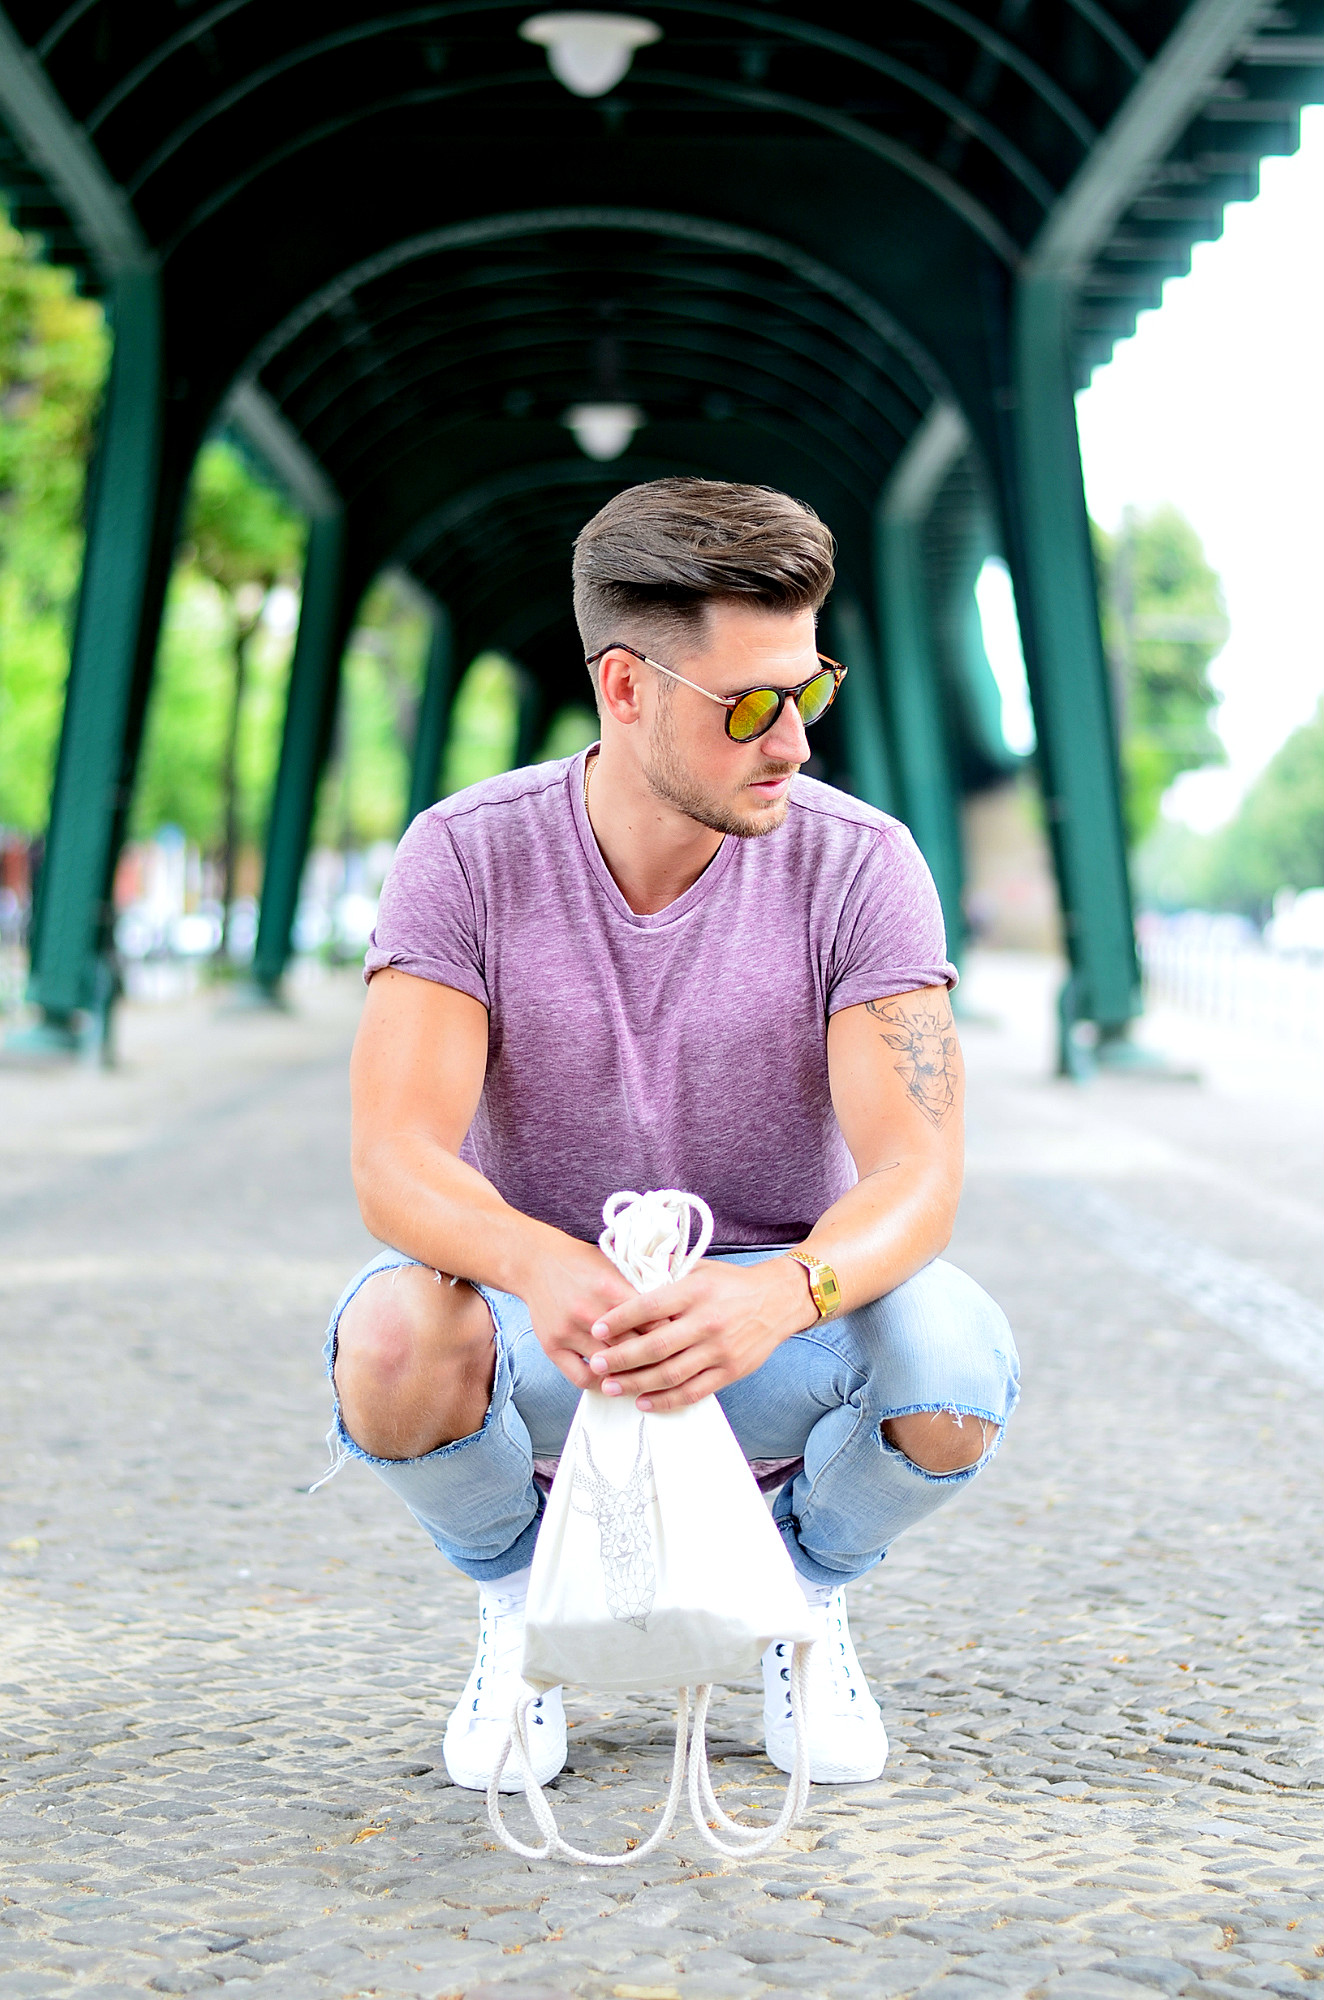 TommeezJerry-Converse-Chucks-weiß-Men-Fashion-Blg-Berlin-Outfit-Look-Longshirt-destroyed-Jeans-Men-Style-Blog-Look-Outfit-Berlin-Fashionblog